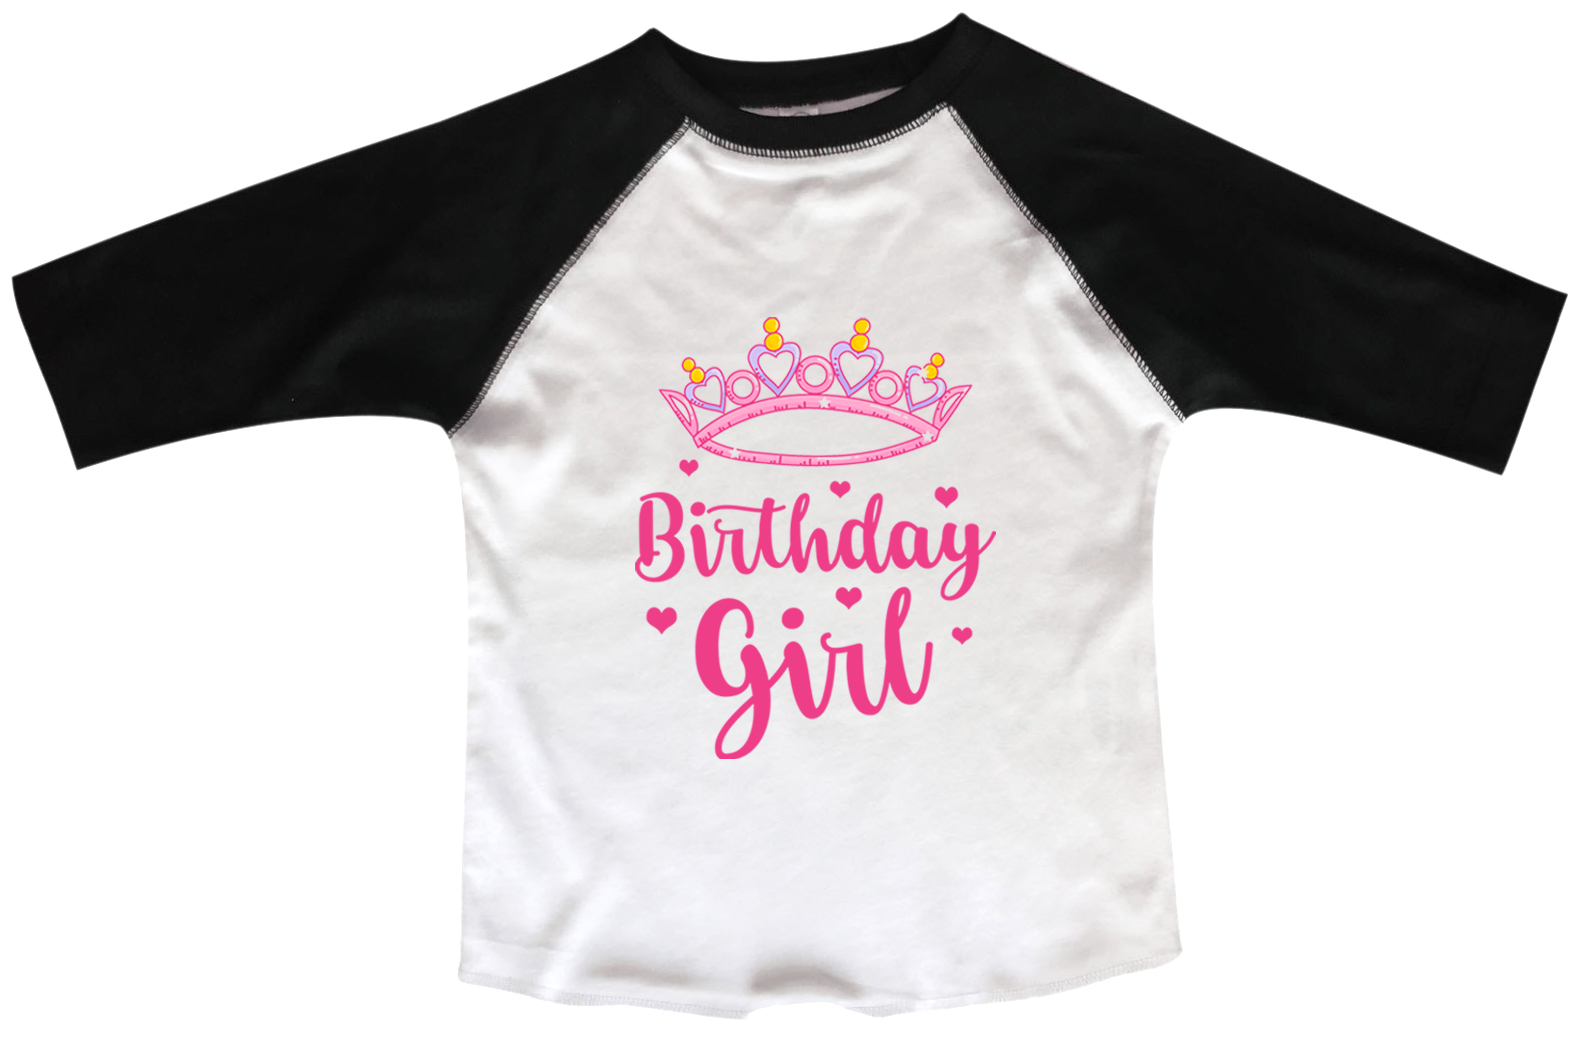 Girls Birthday Raglan 3 4 Sleeves Girl Tiara Toddler Youth Baseball Tee X Small Black